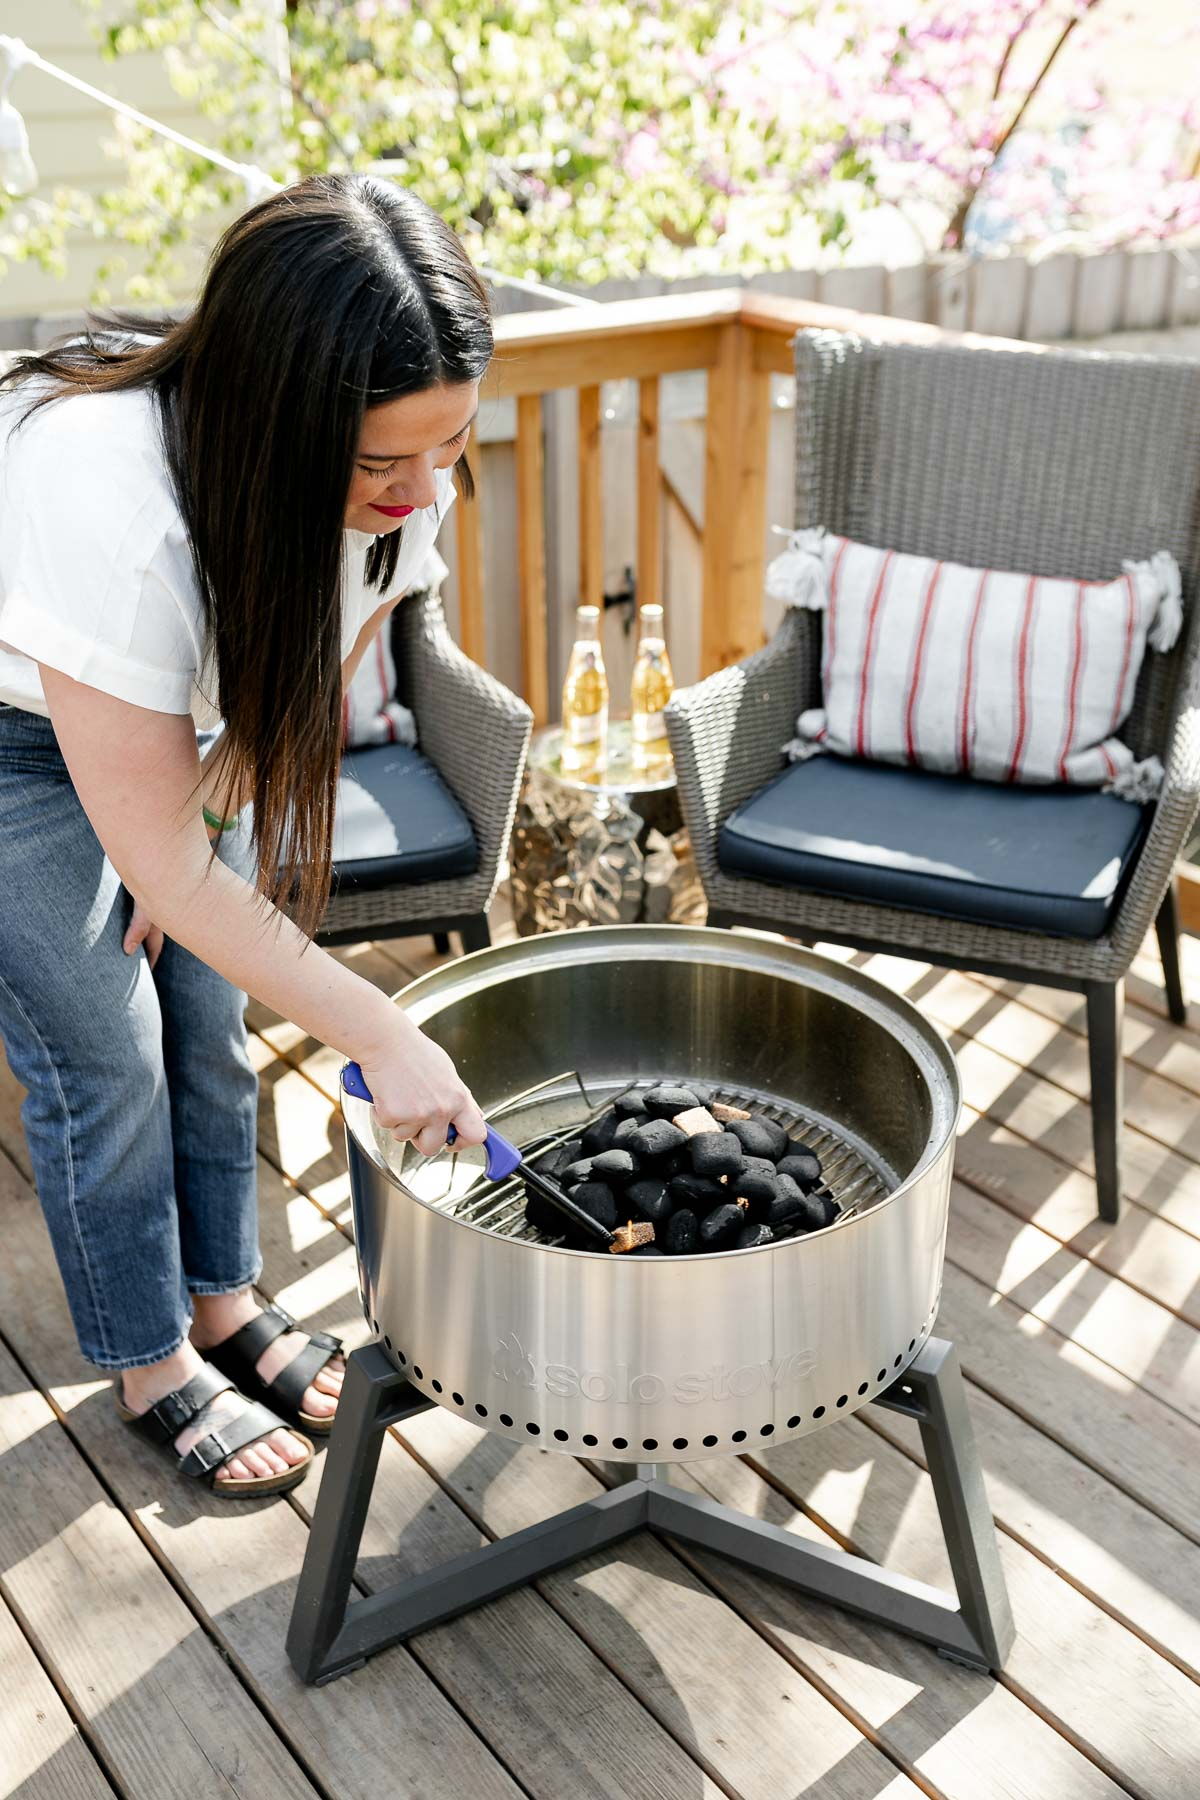 Jess of Plays Well With Butter lighting the all-natural charcoal inside her Solo Stove Grill with a long-handled lighter. Two gray patio chairs are set up behind the grill in the background, each with a red & white striped lumbar pillow on top of them. There is a small side table in between the two chairs with two Miller High Life beers on top.